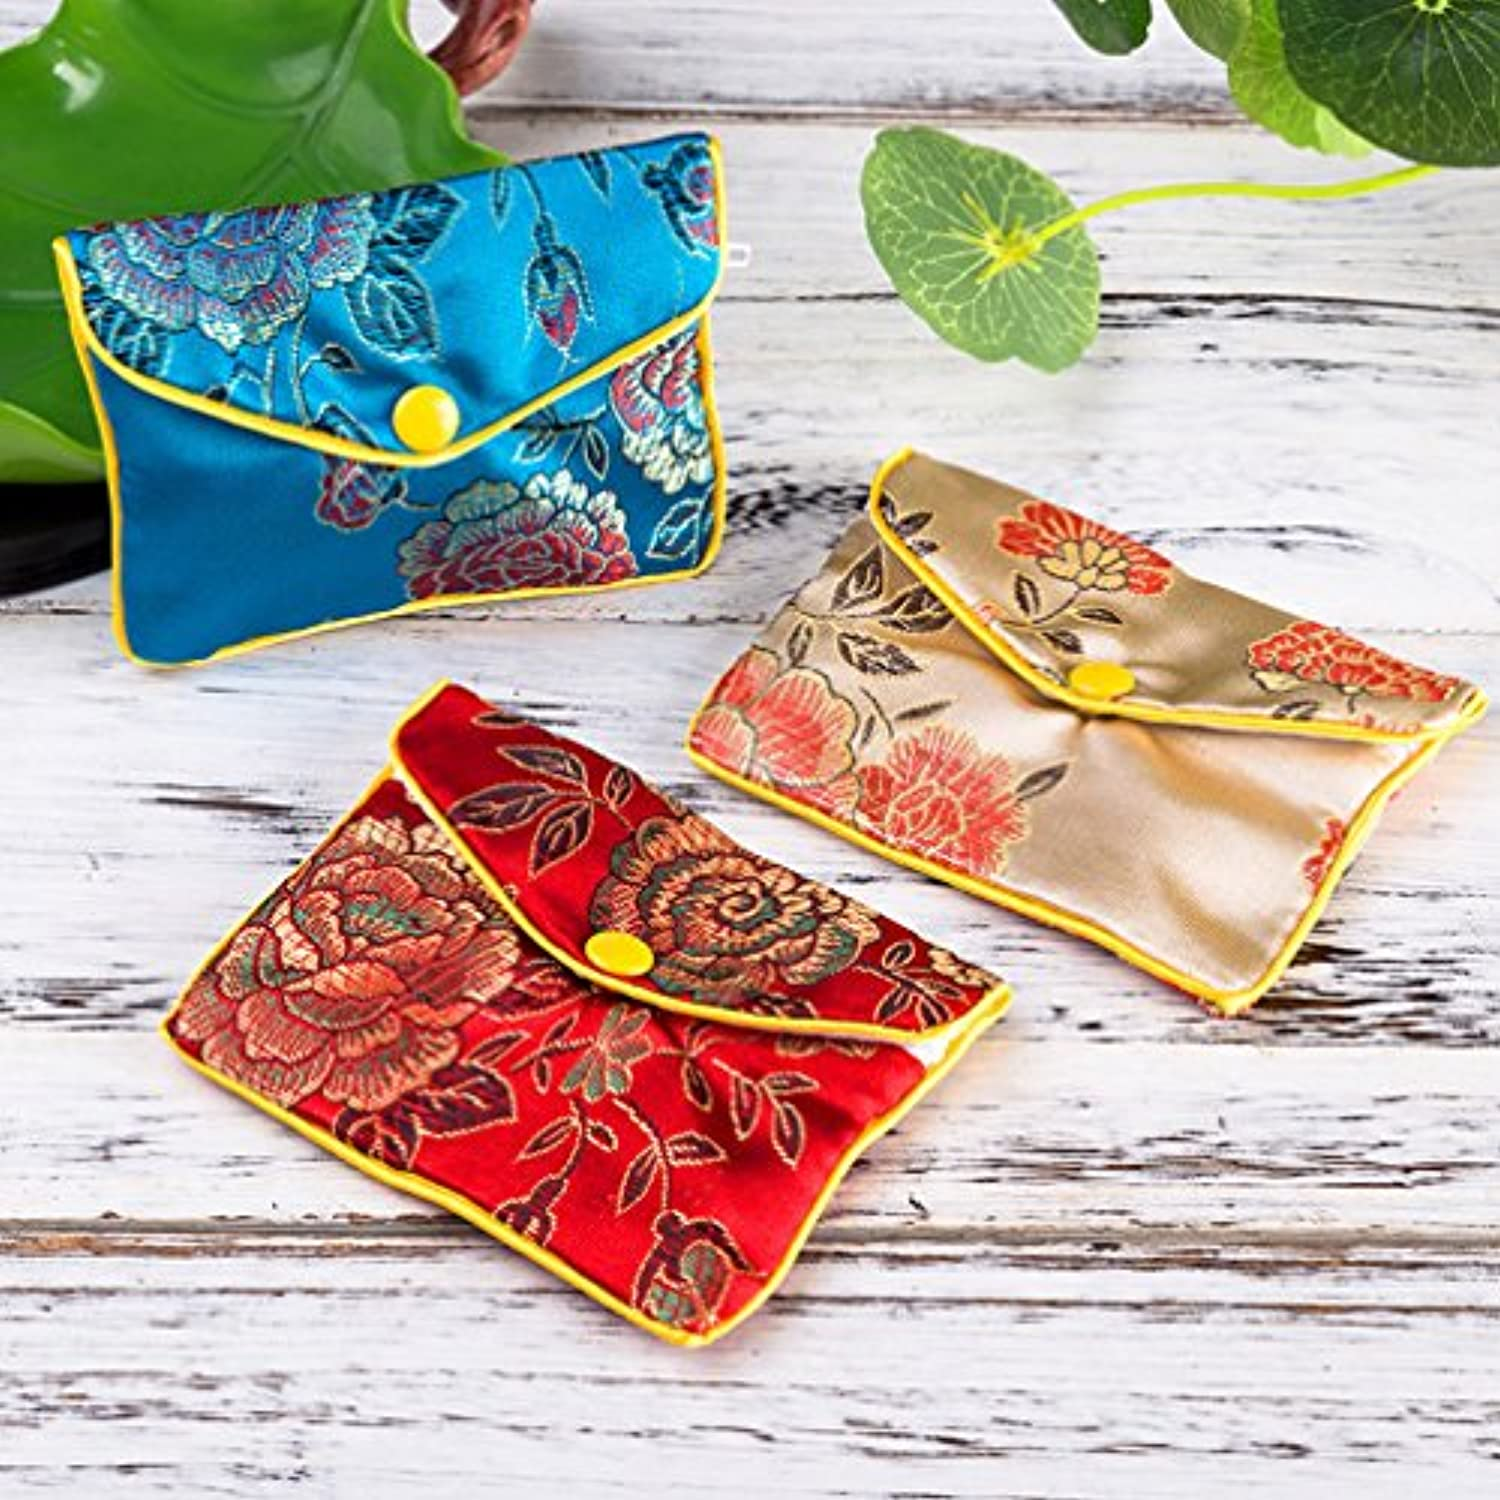 Jewelry Silk Purse Pouch Gift Bags, Multiple Colors, Pack of 12 (Small)